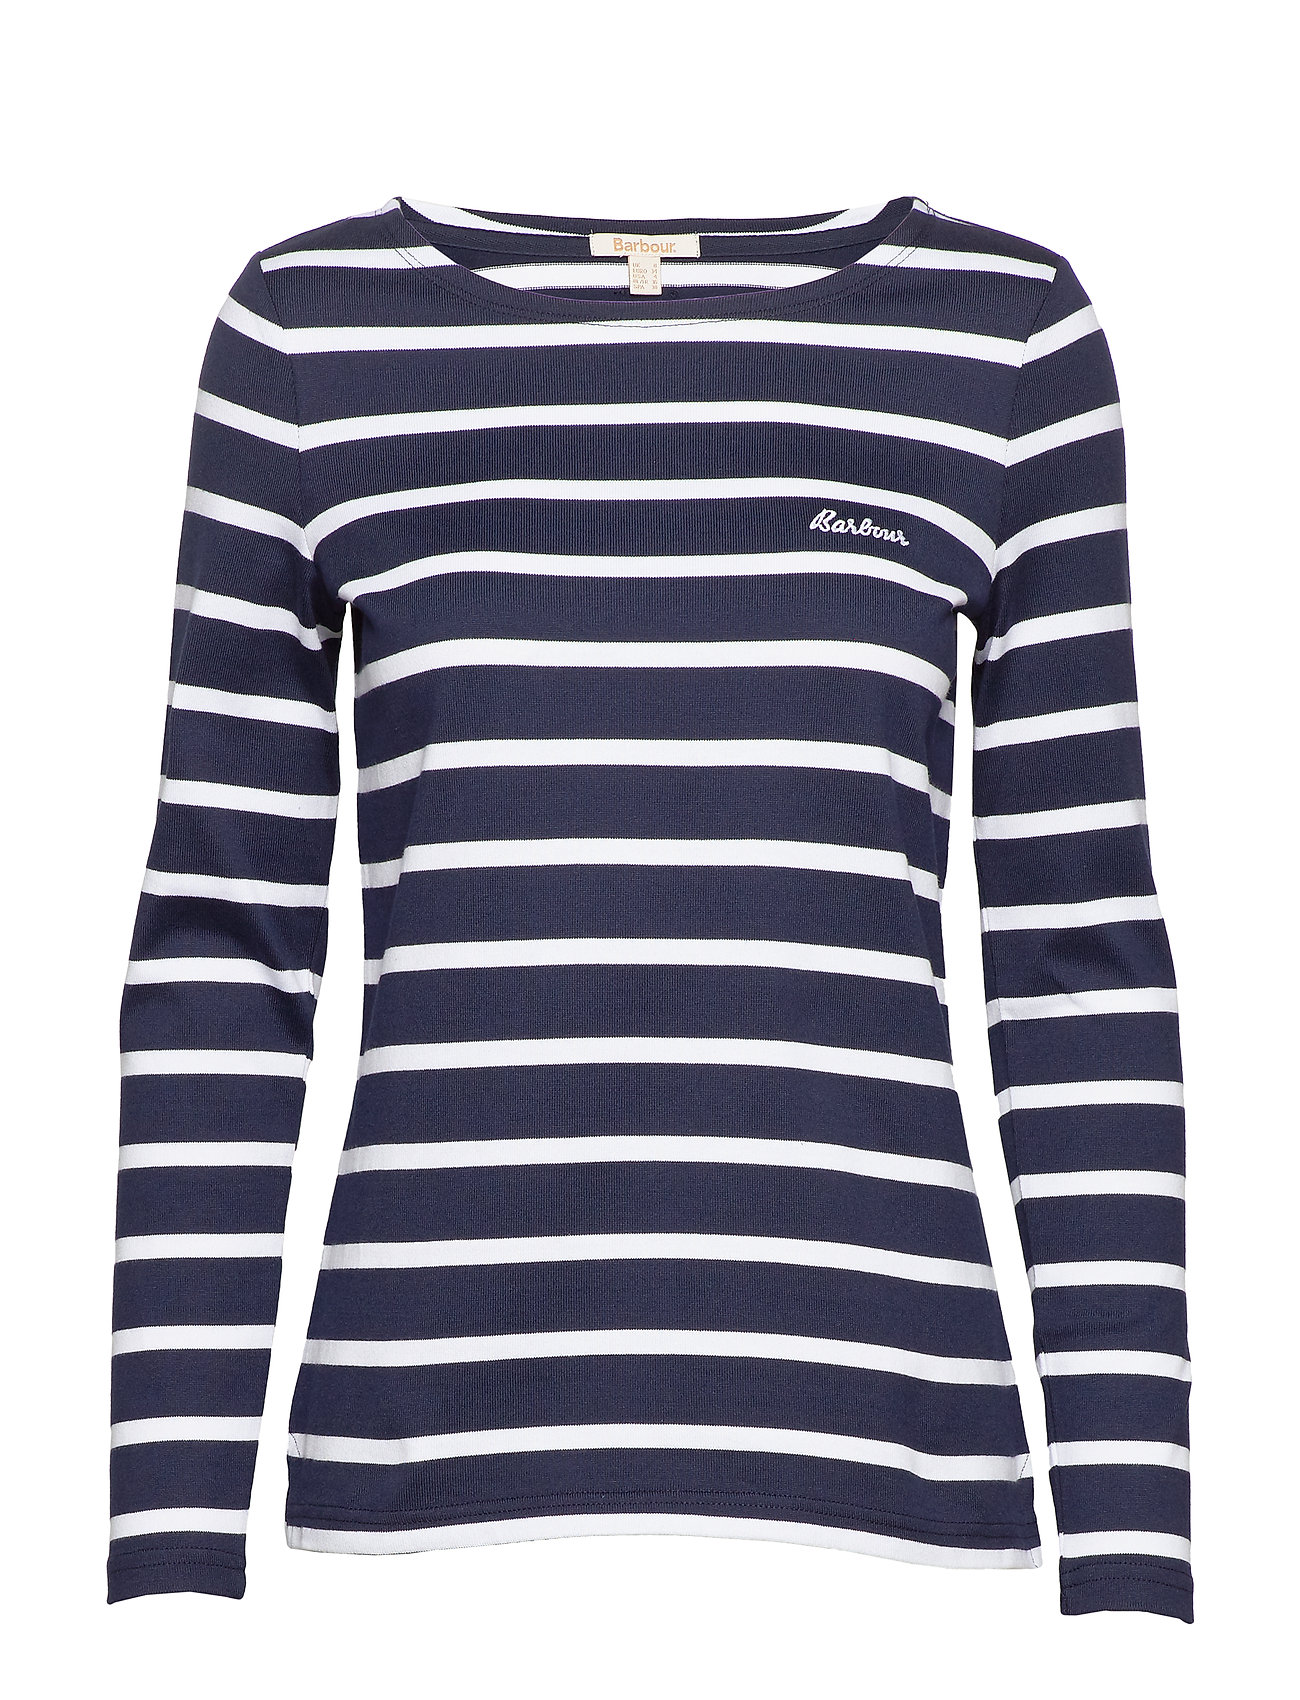 Barbour BarbourStripeTop - NAVY/WHITE